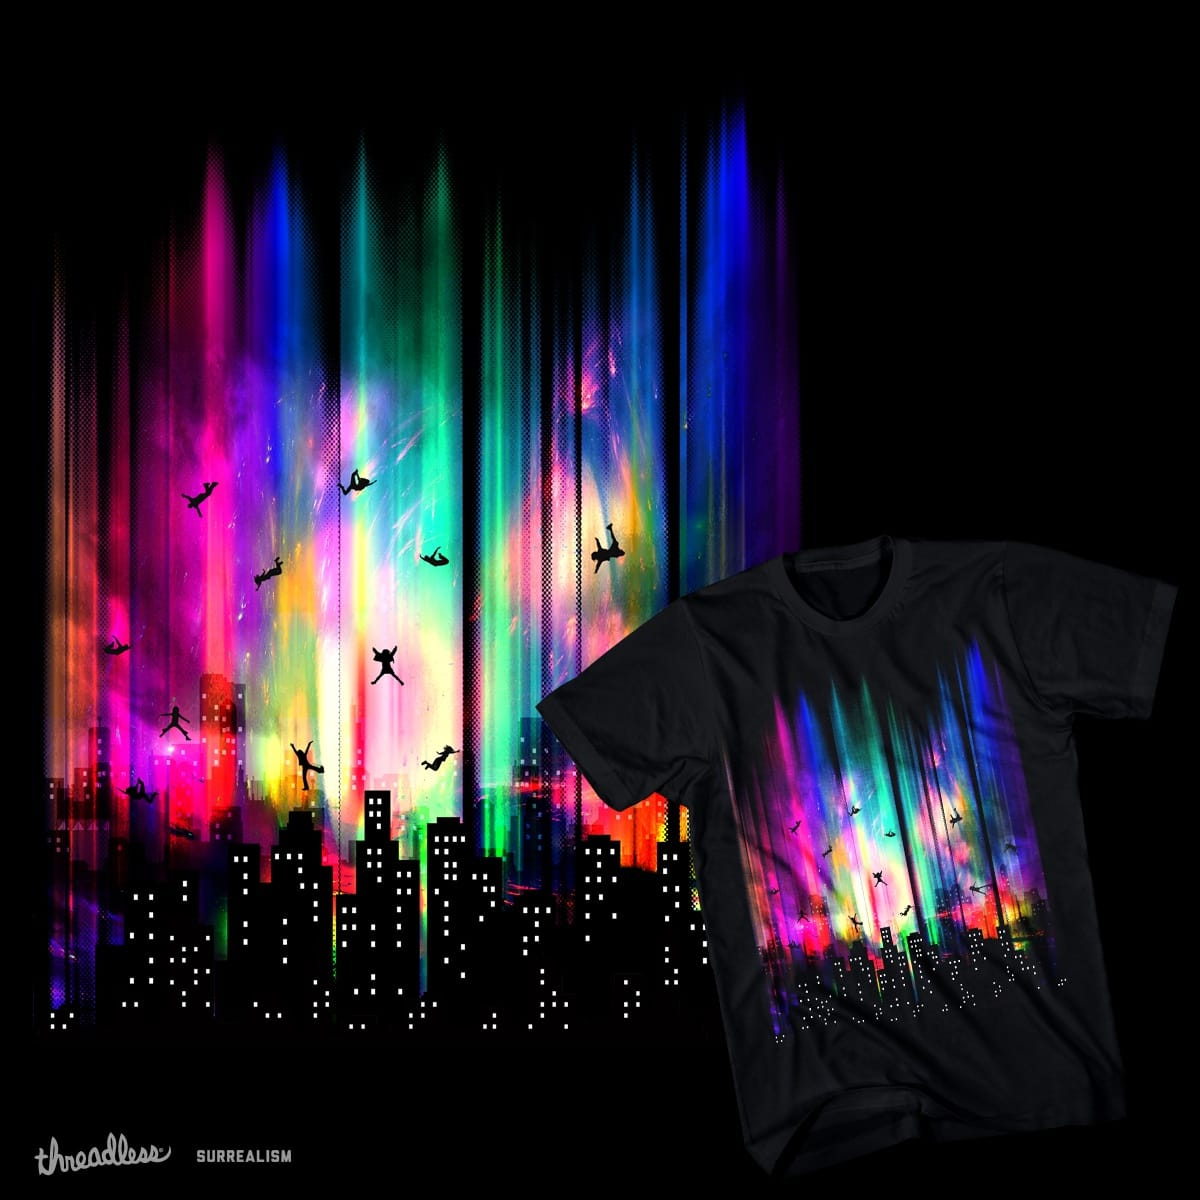 Feel Without Gravity by chingmoncheng on Threadless